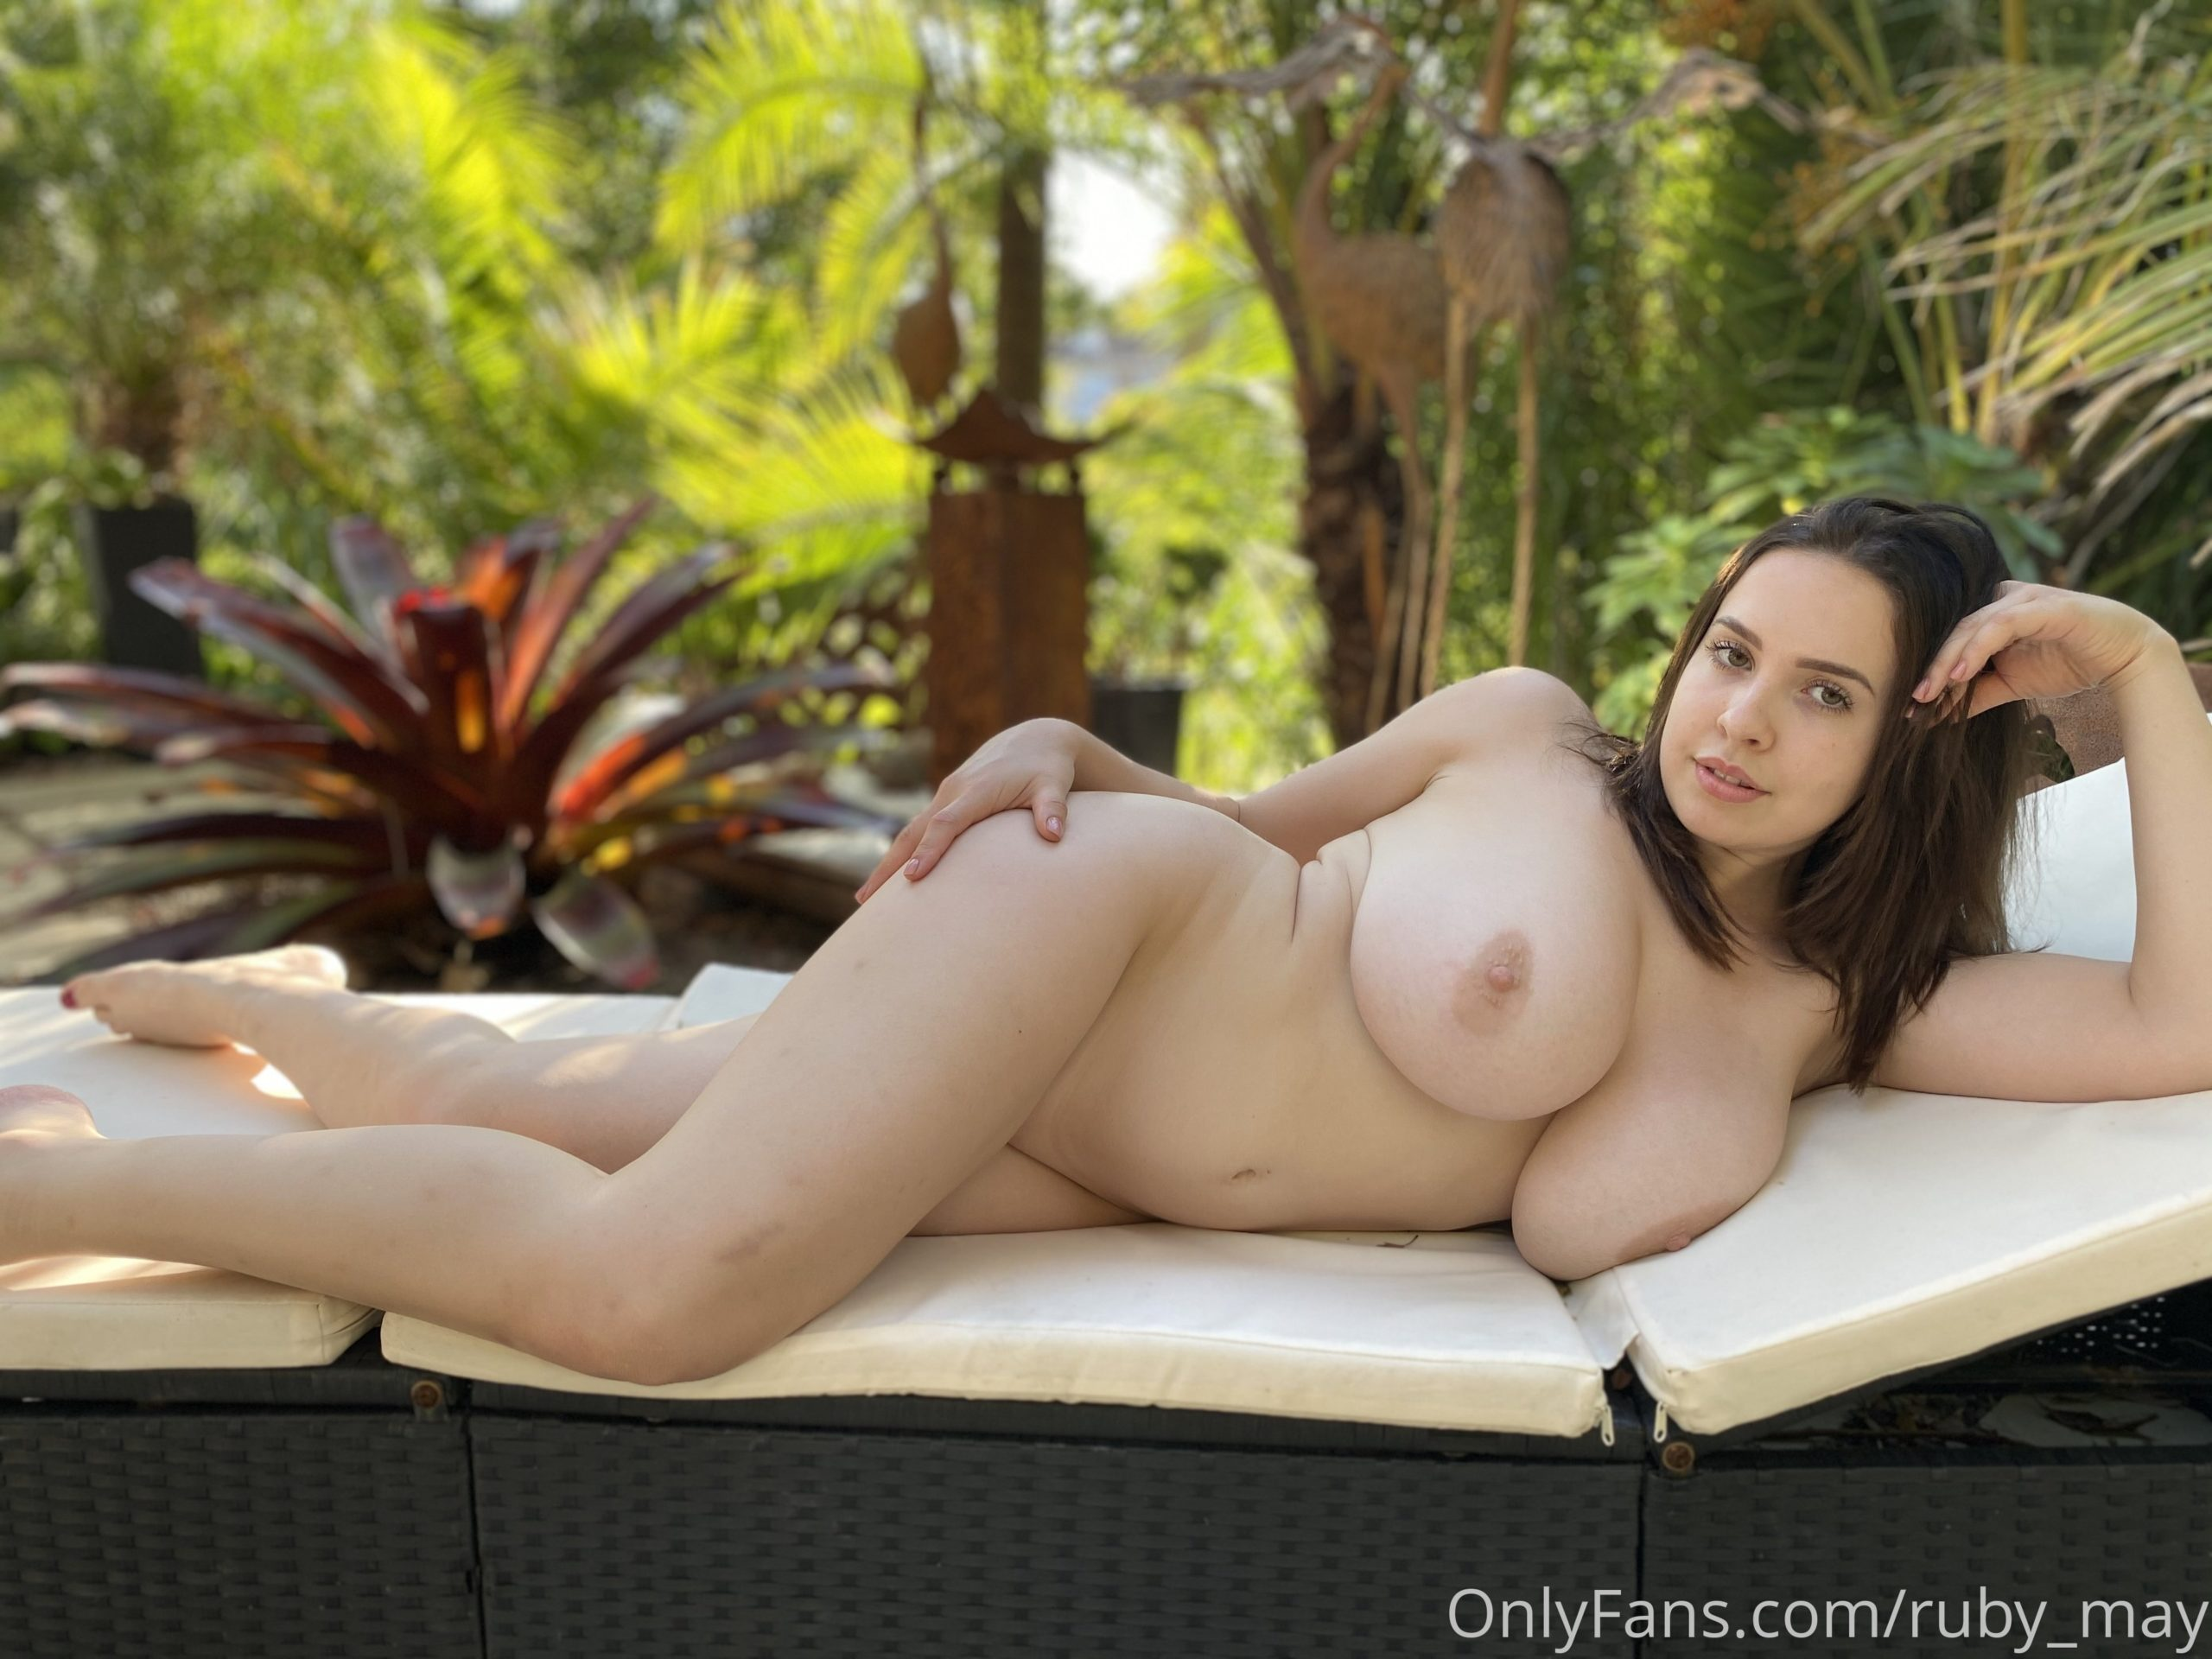 Ruby May Onlyfans Nude Gallery Leaked